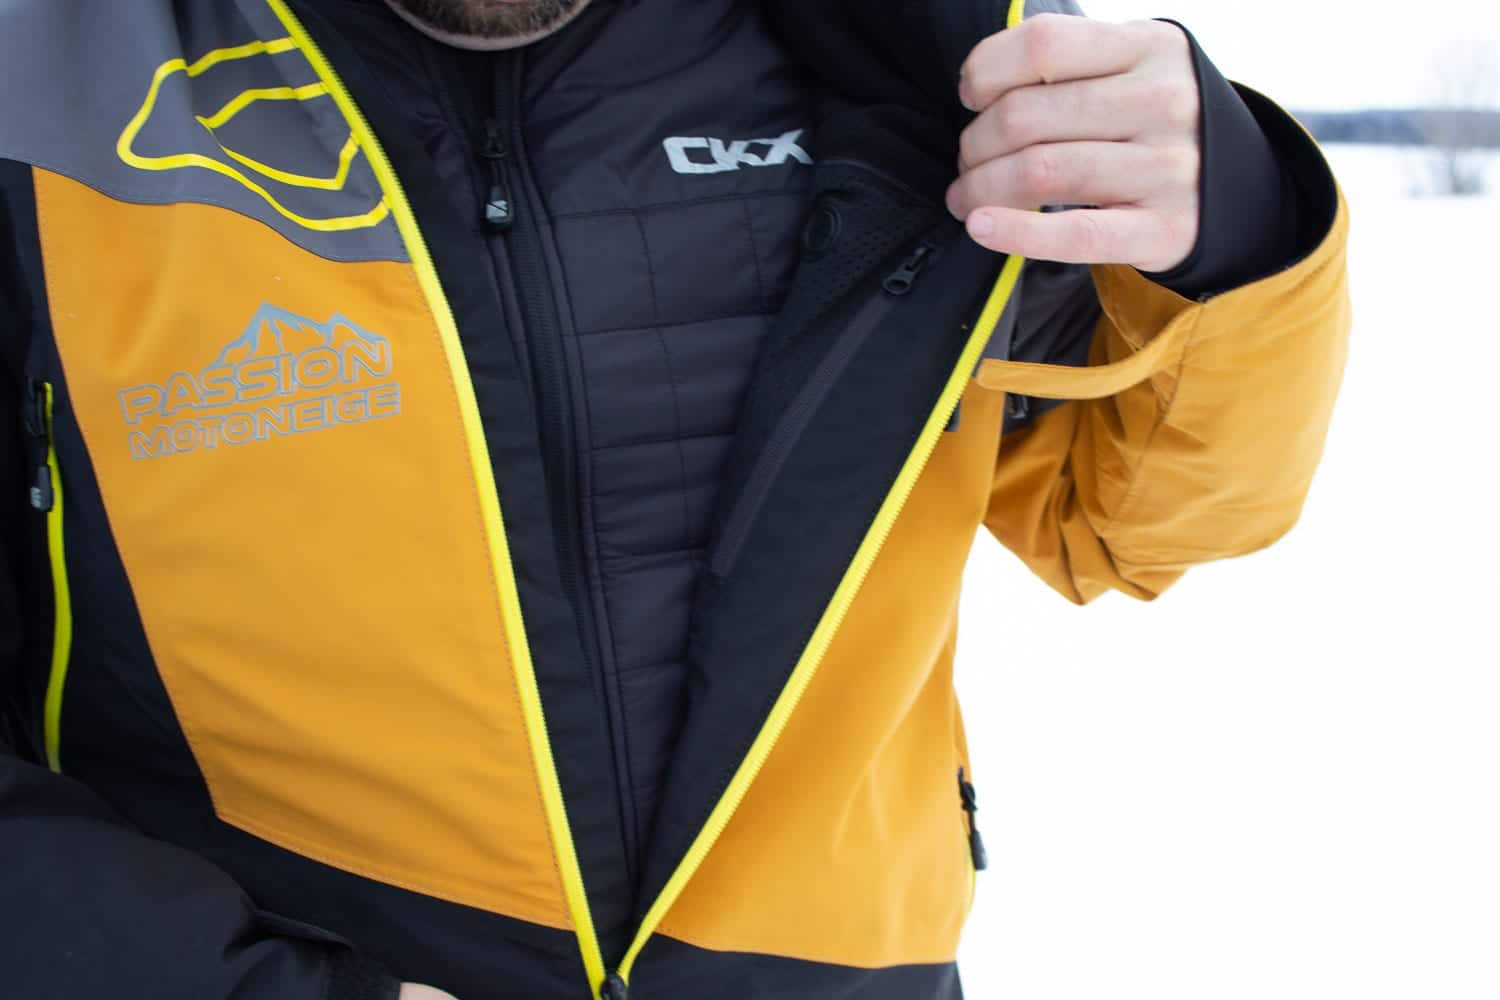 2019 CKX Winter Clothing